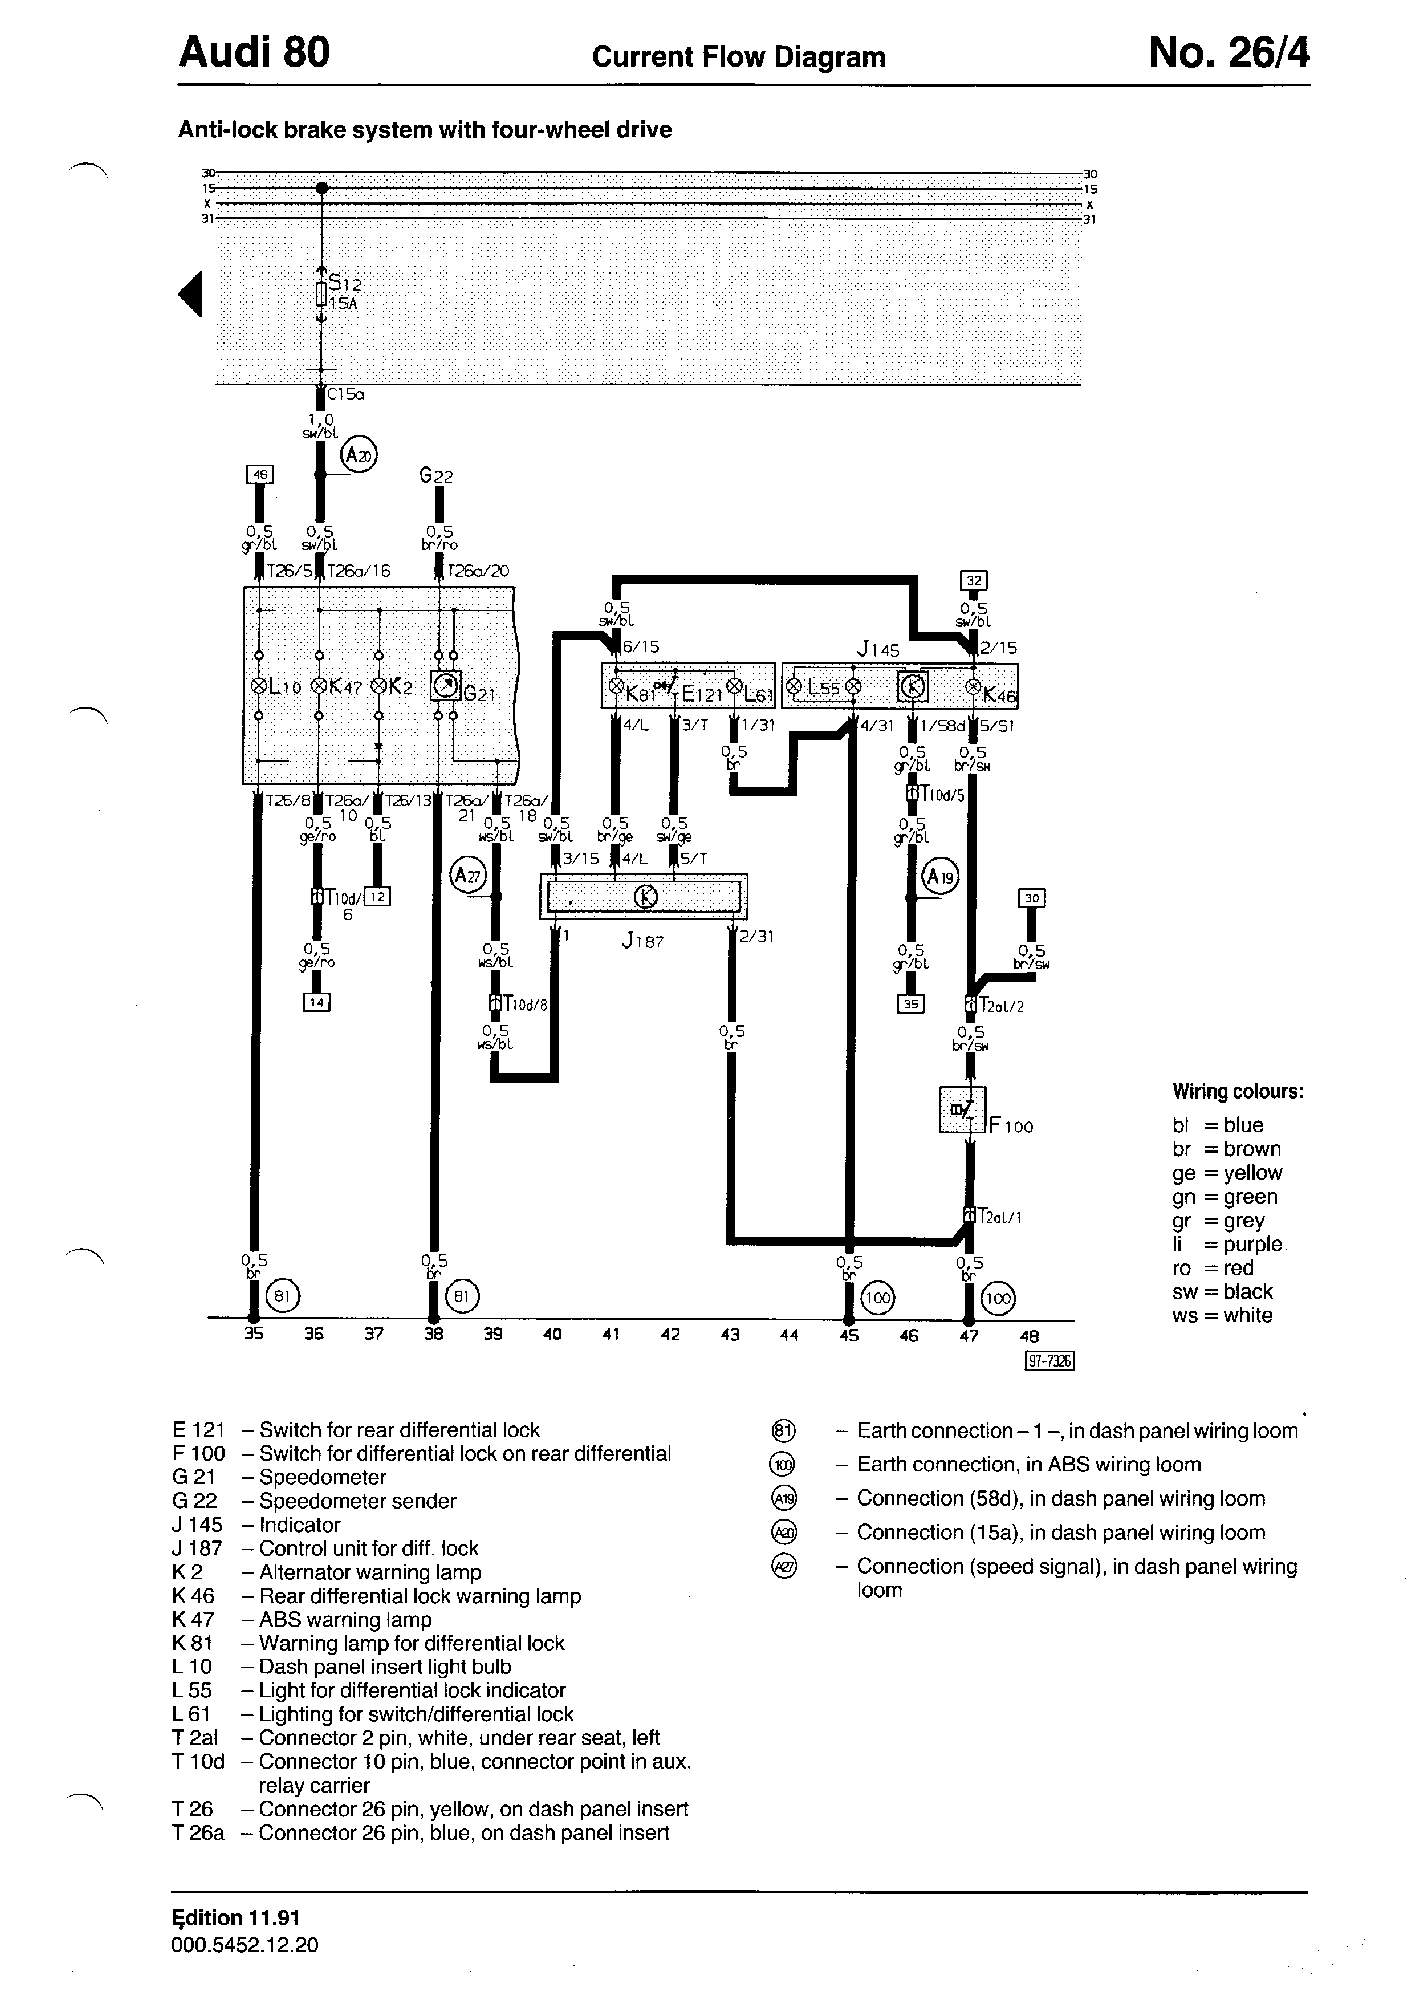 Anti lock braking system with 4wd from September 1991 (c